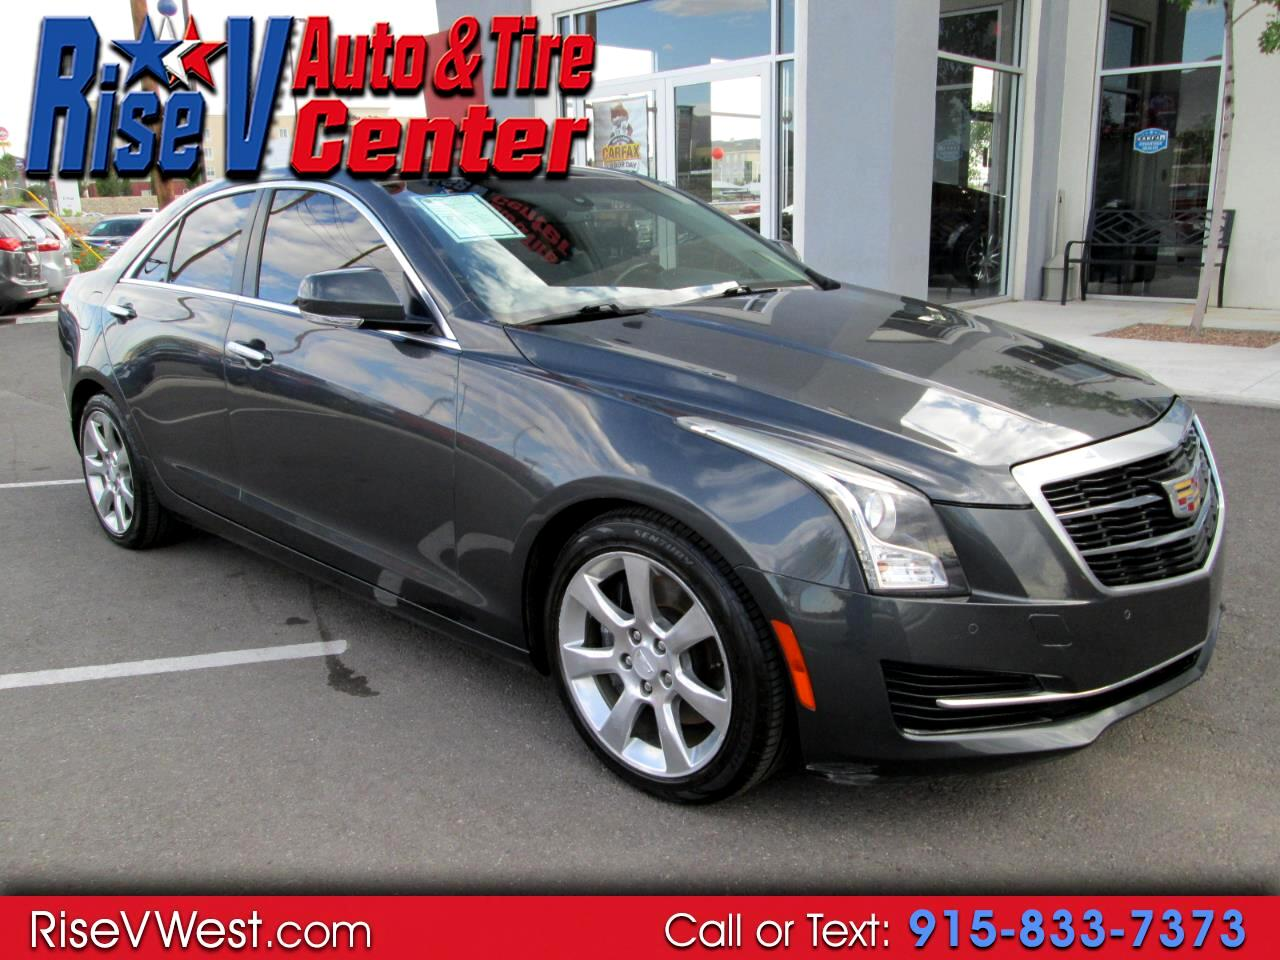 Cadillac ATS Sedan 4dr Sdn 3.6L Luxury RWD 2015